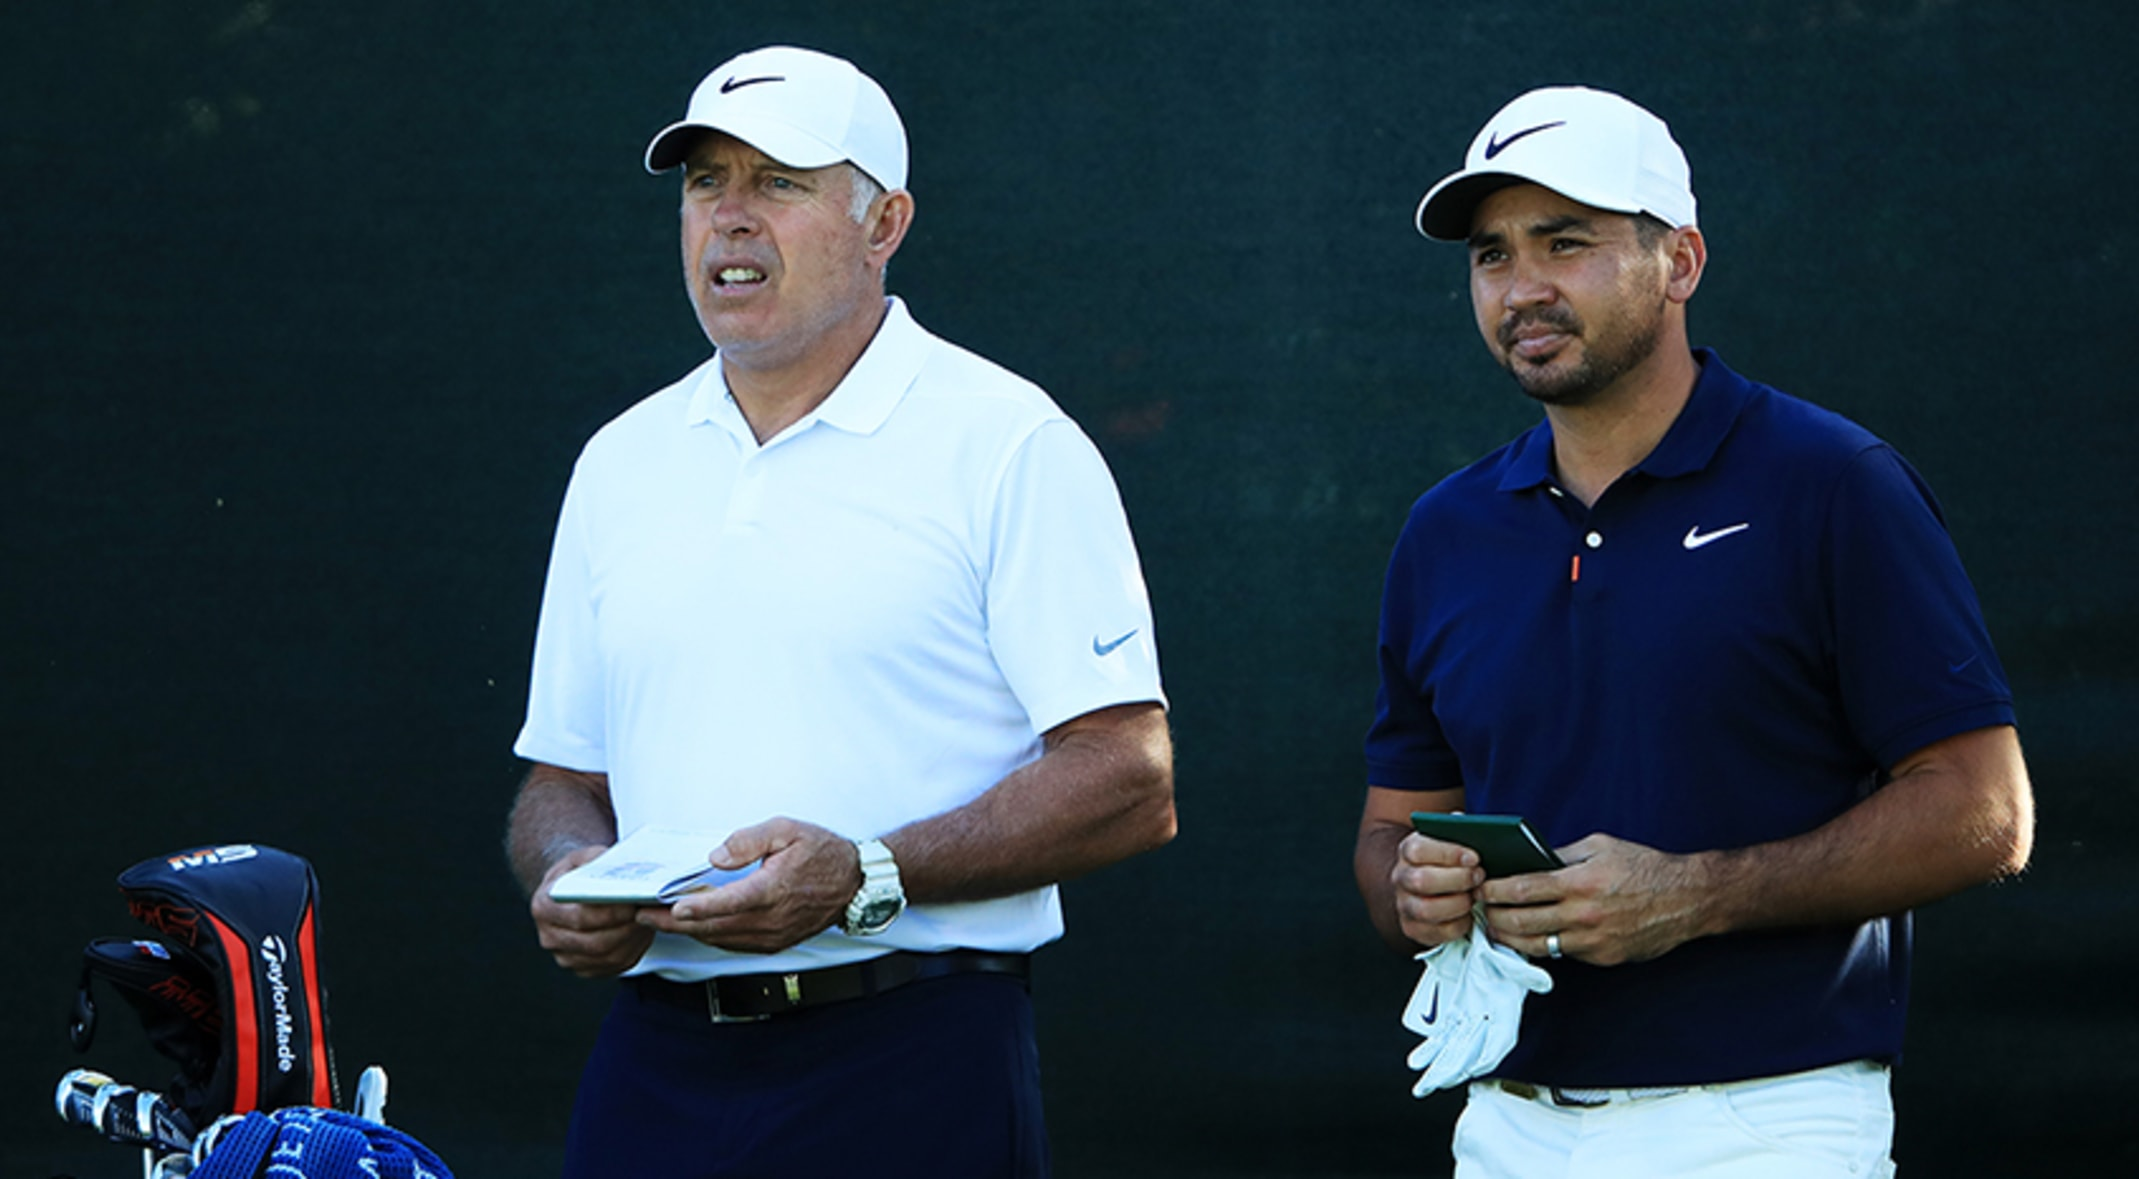 Day hires 'goal-oriented' Williams to caddie starting at U S  Open